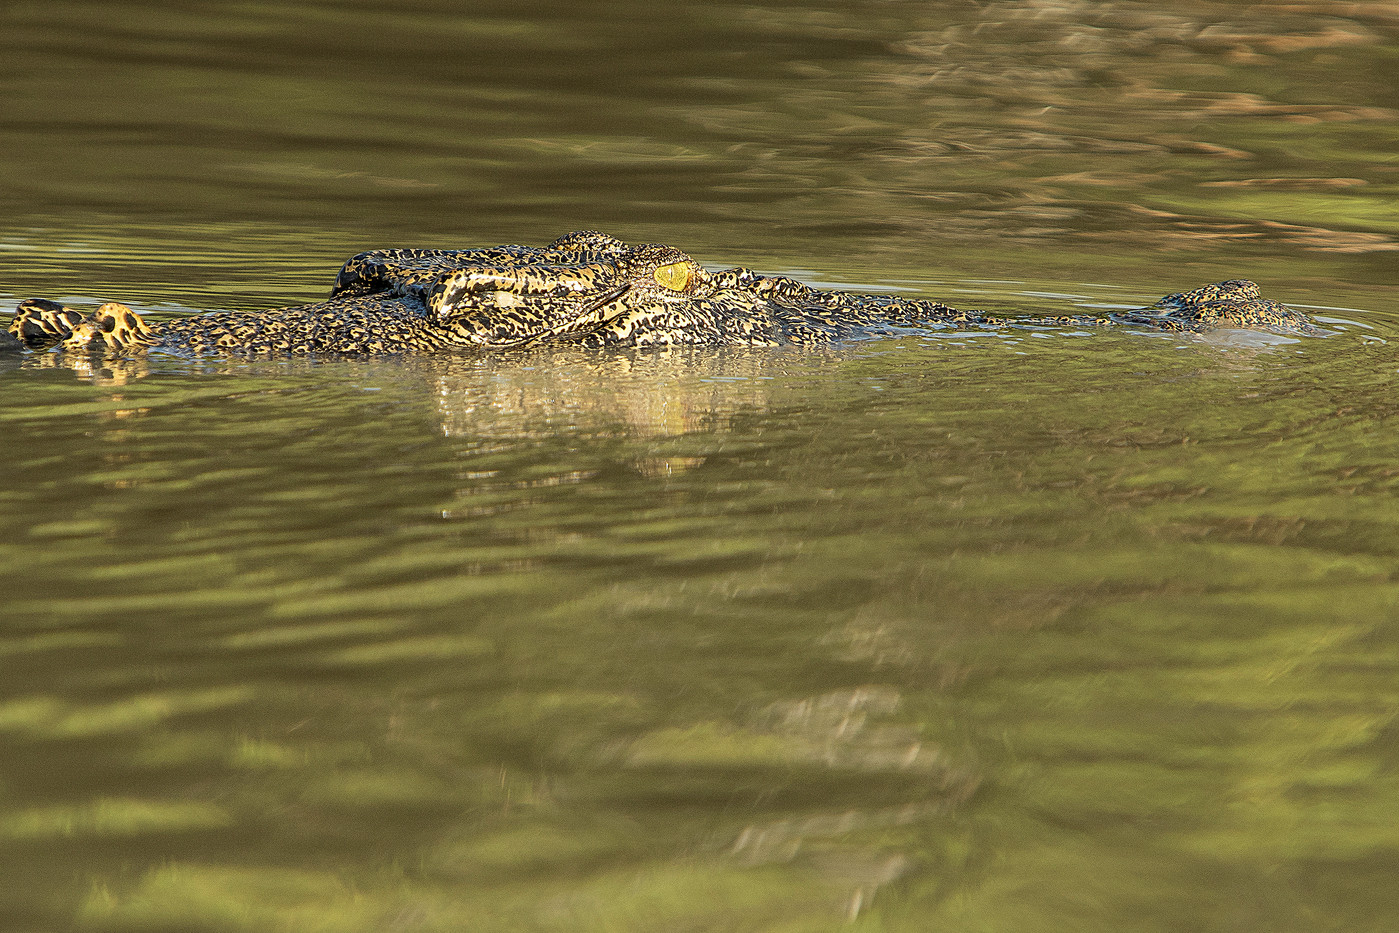 Saltwater Crocodile on the Mary River, Australia